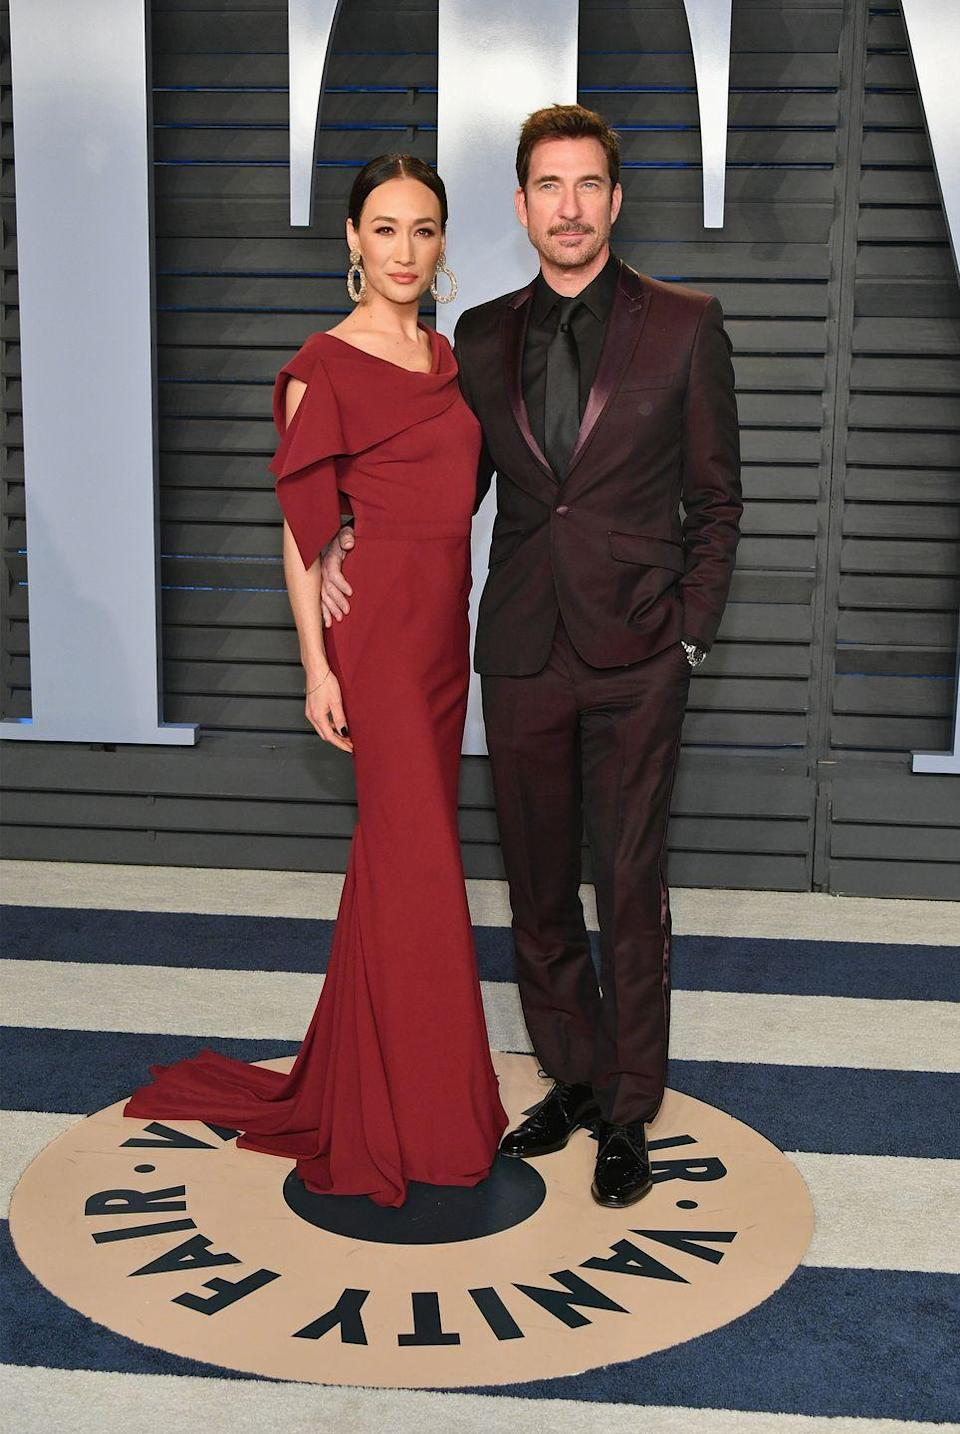 """<p>The <em>Stalker </em>co-stars met on the set of their CBS crime drama in 2014 and McDermott <a href=""""https://people.com/tv/dylan-mcdermott-maggie-q-split/"""" rel=""""nofollow noopener"""" target=""""_blank"""" data-ylk=""""slk:reportedly"""" class=""""link rapid-noclick-resp"""">reportedly</a> proposed seven weeks later. They split four years later, <em>People </em>reporting on their breakup in February 2019.</p>"""